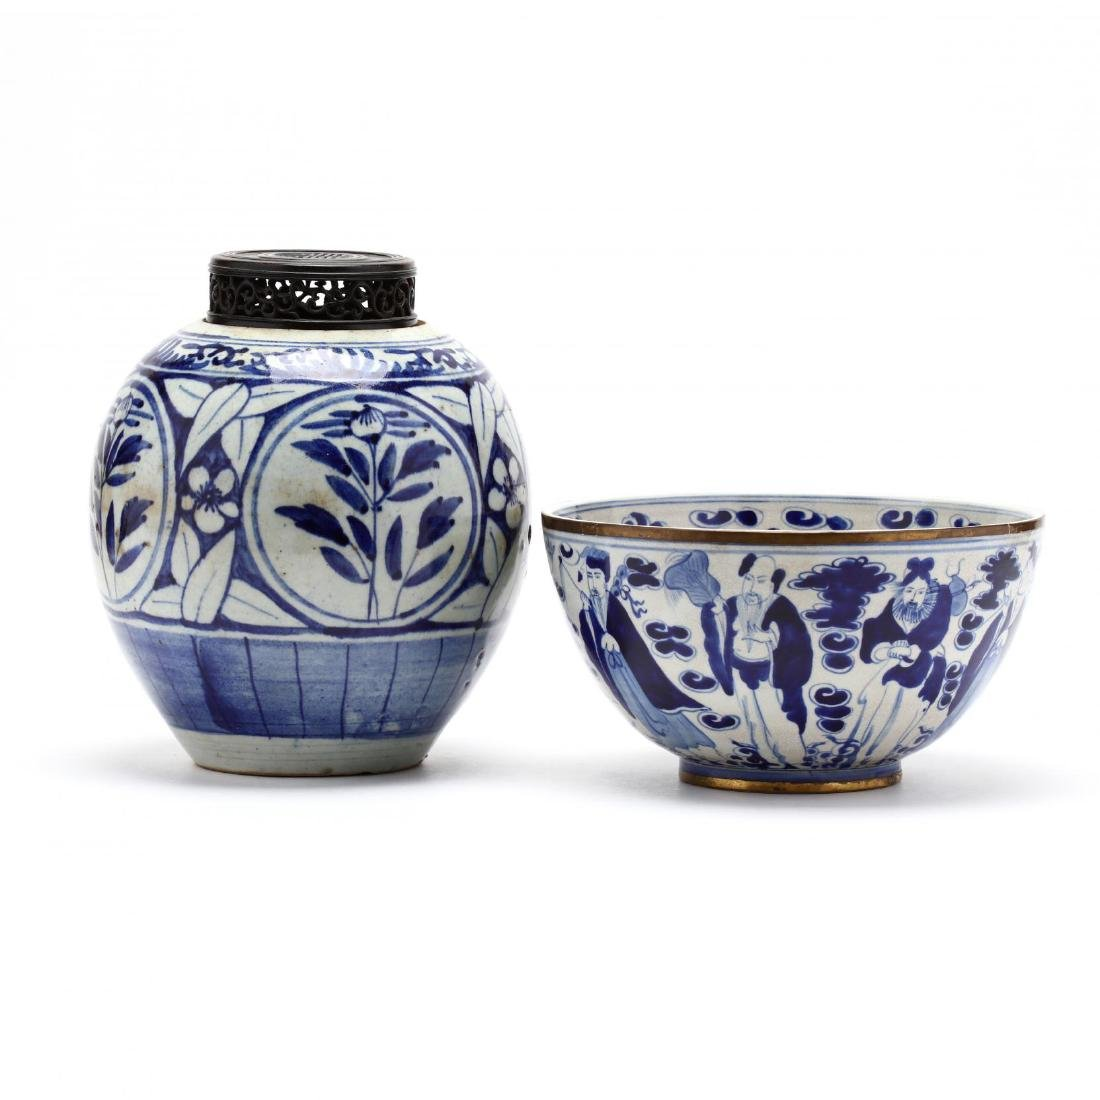 A Chinese Blue and White Ginger Jar and Bowl